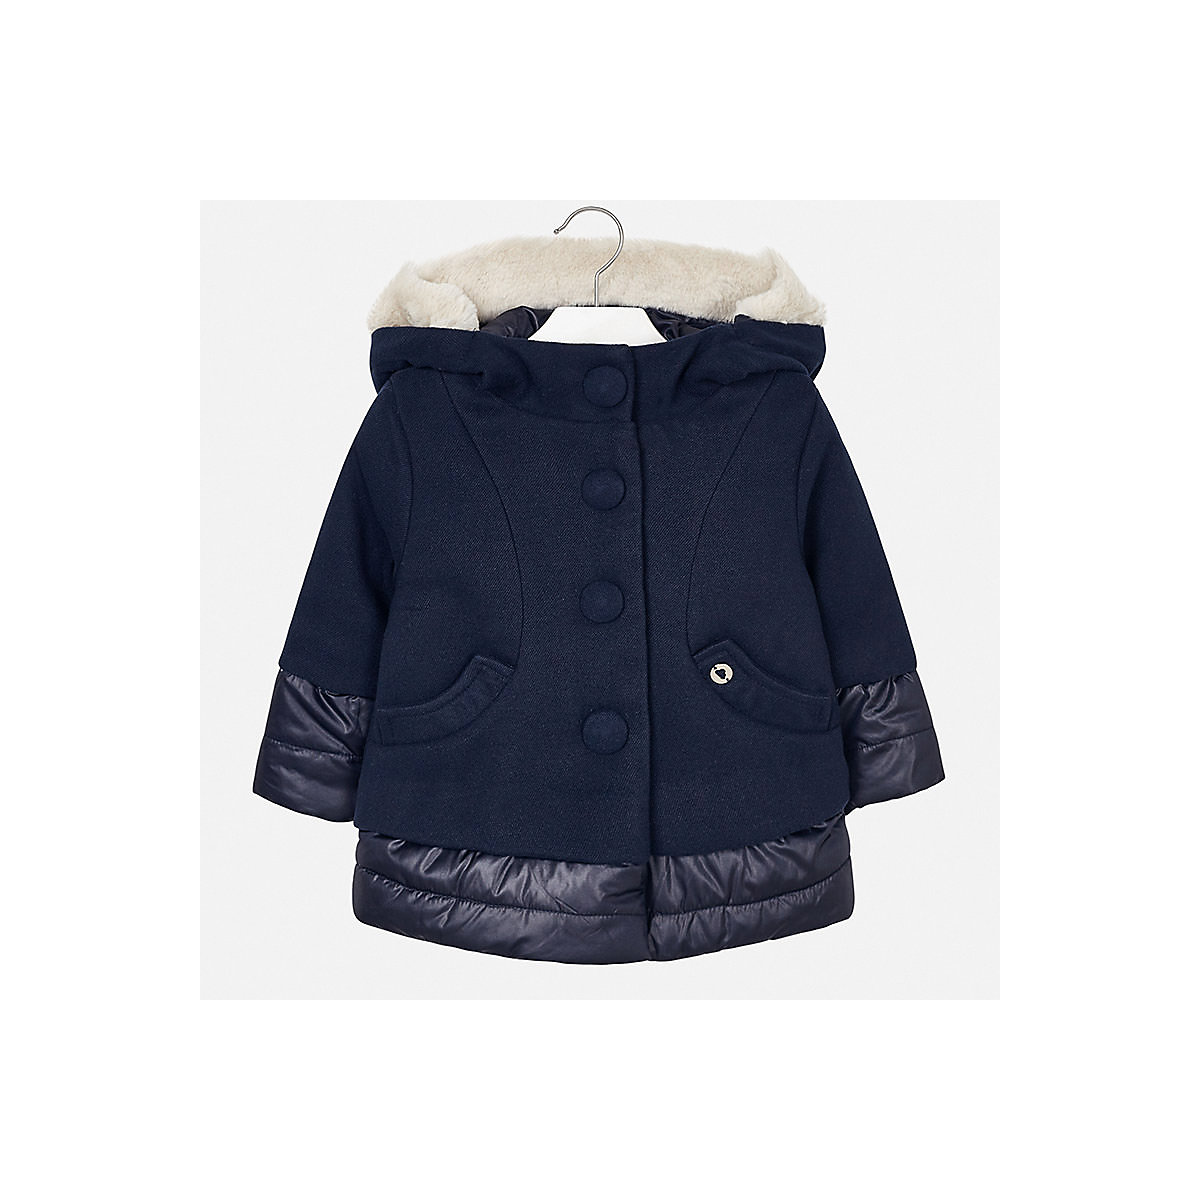 MAYORAL Jackets & Coats 8849867 jacket for girl boy coat baby clothes children clothing outwear boys girls newborn infant baby girls boys clothing fist romper long sleeve jumpsuit outfits baby boy clothes